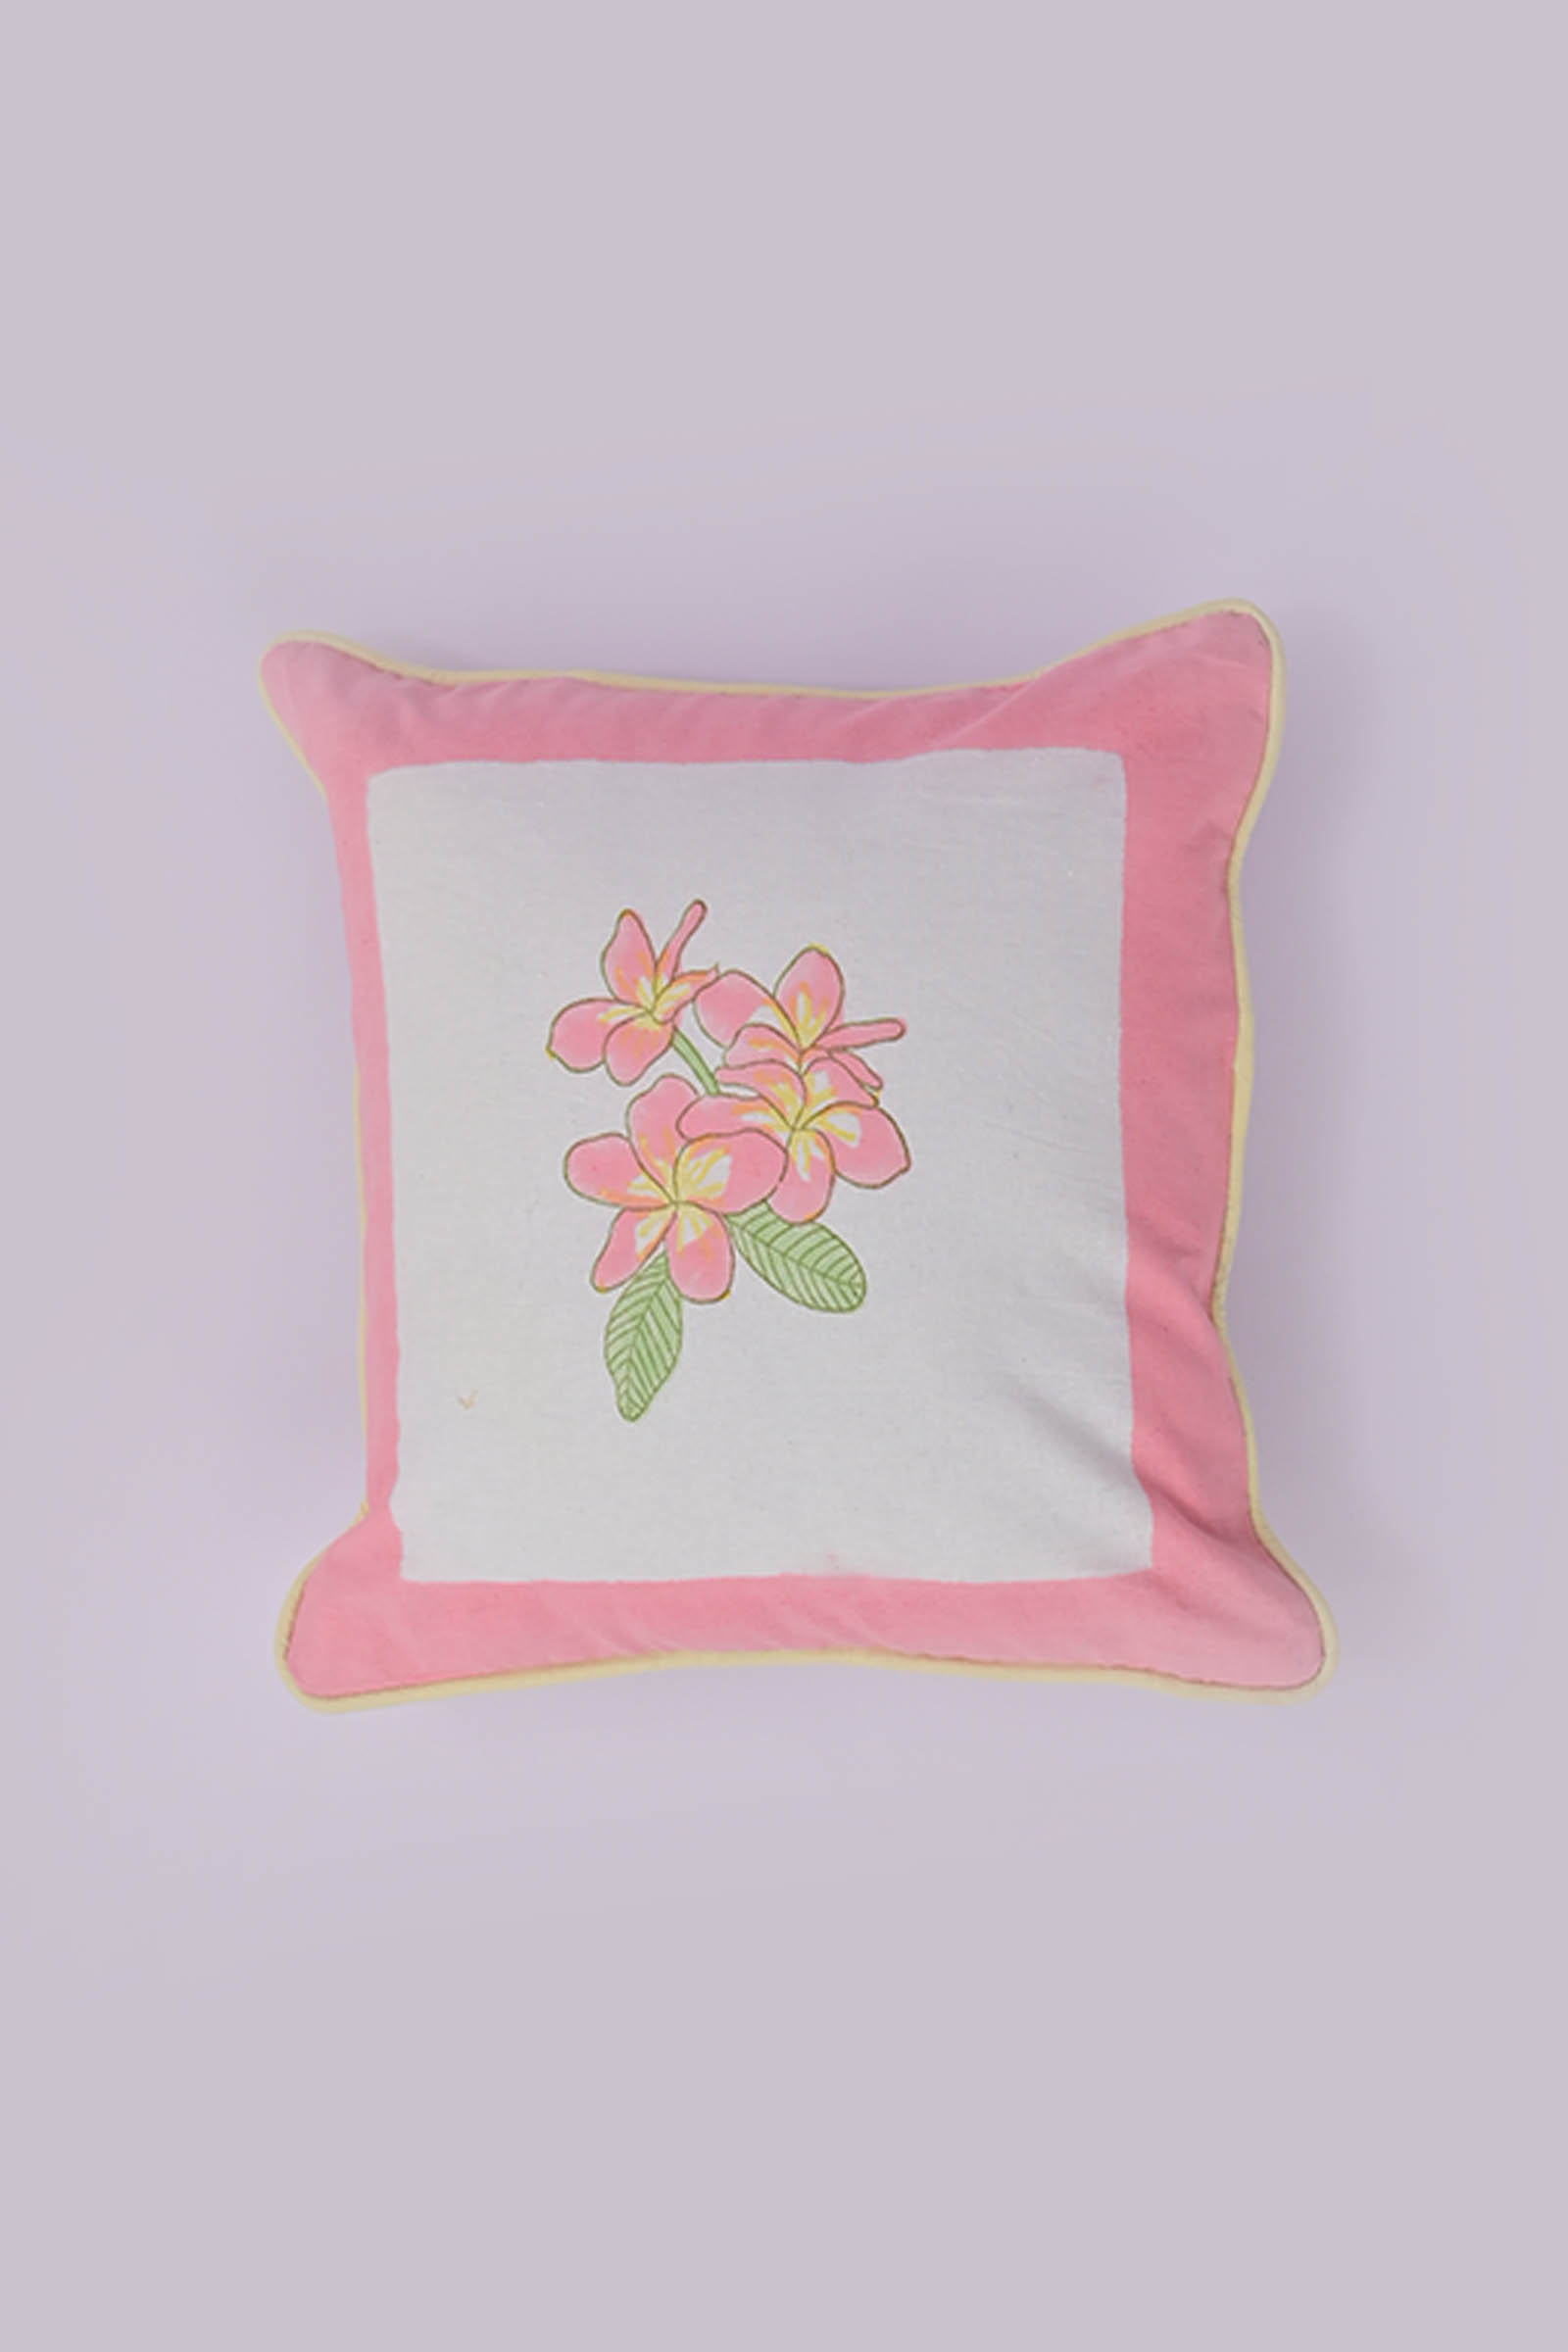 Frangipani 12*12 Cushion Cover